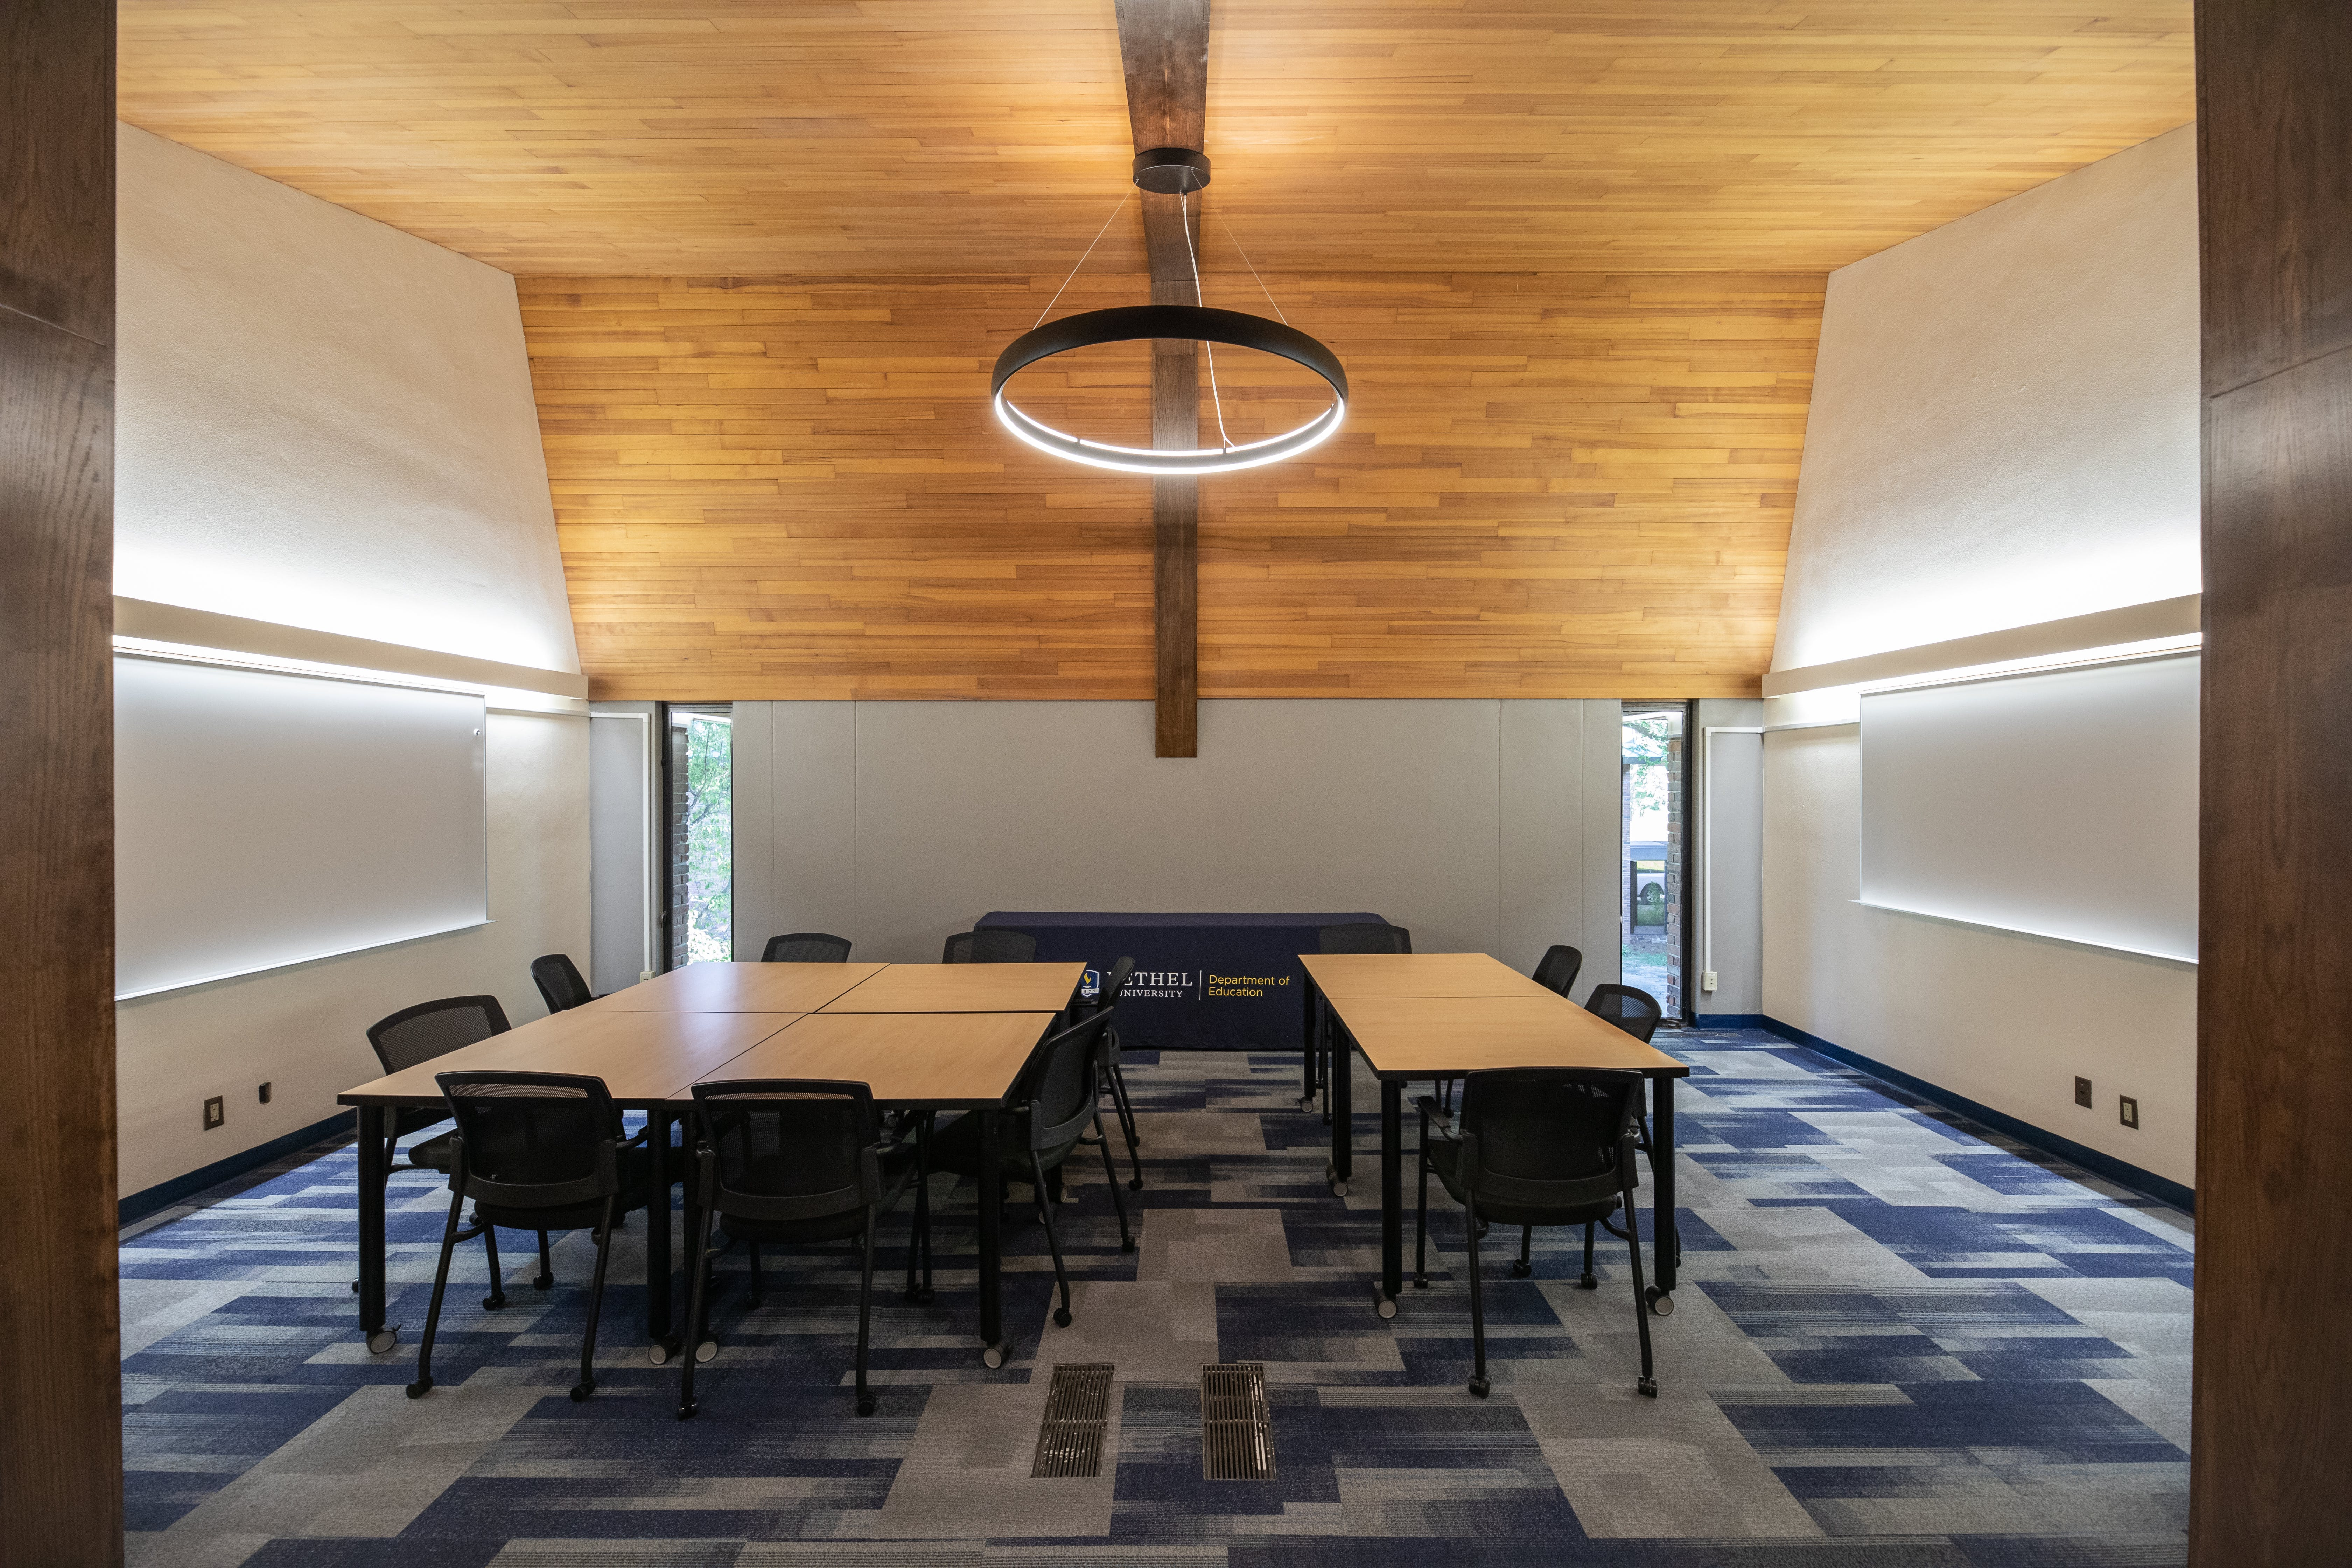 One of the new Department of Education spaces at Bethel's lakeside Center